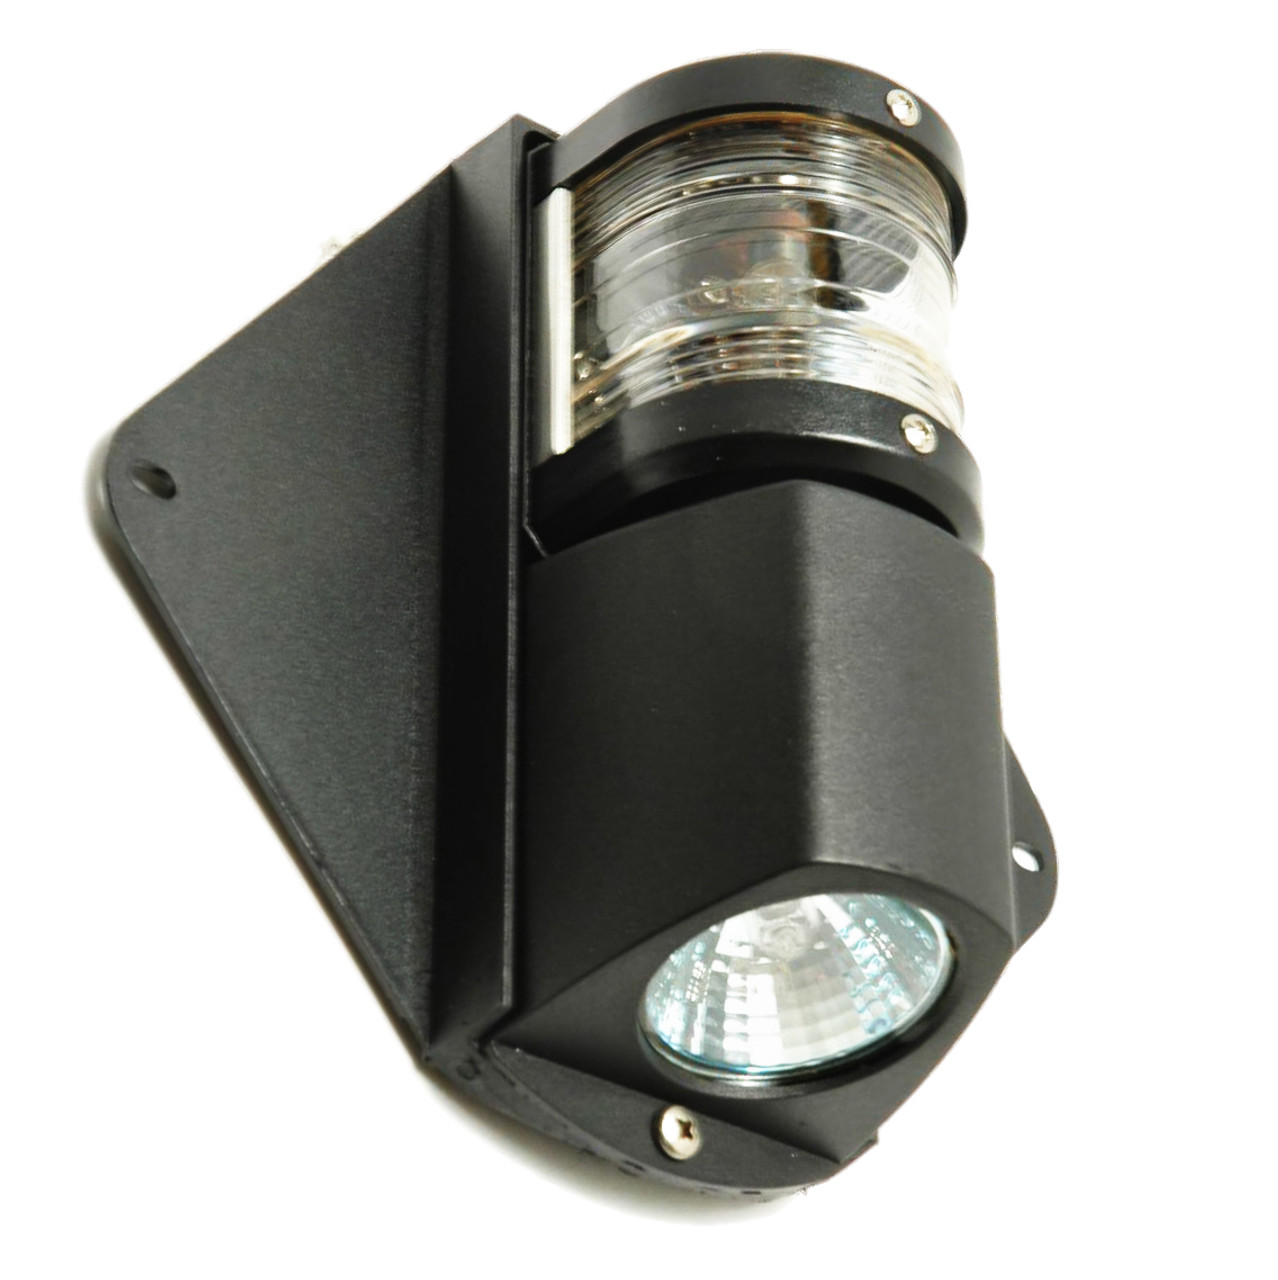 Foredeck Light with Steaming (Masthead) Light